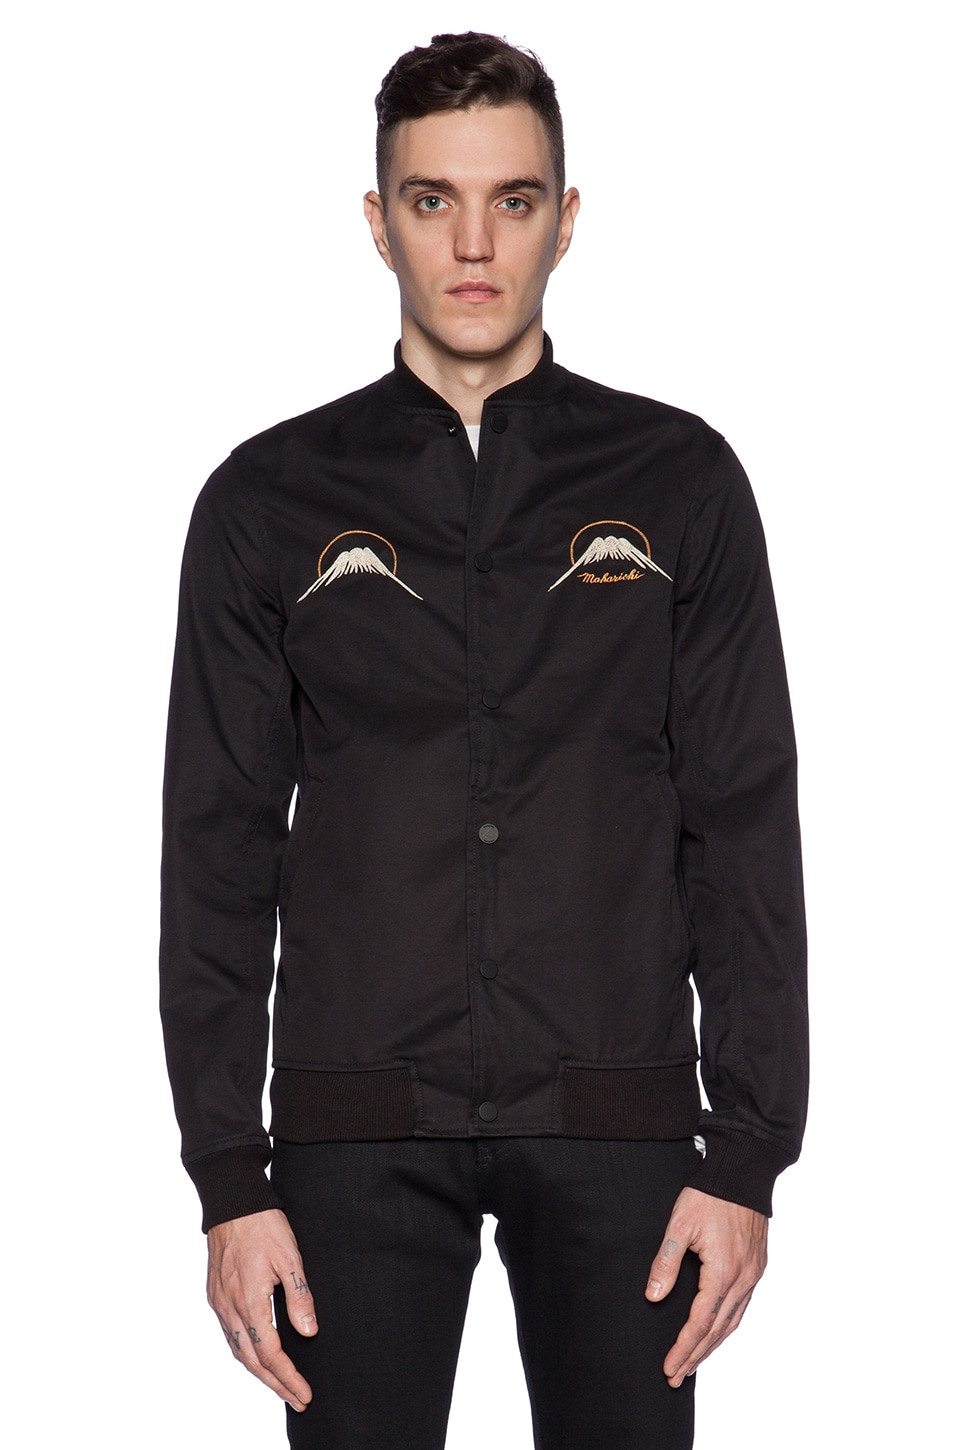 Maharishi Nagarkot Eagle Tour Jacket in Black